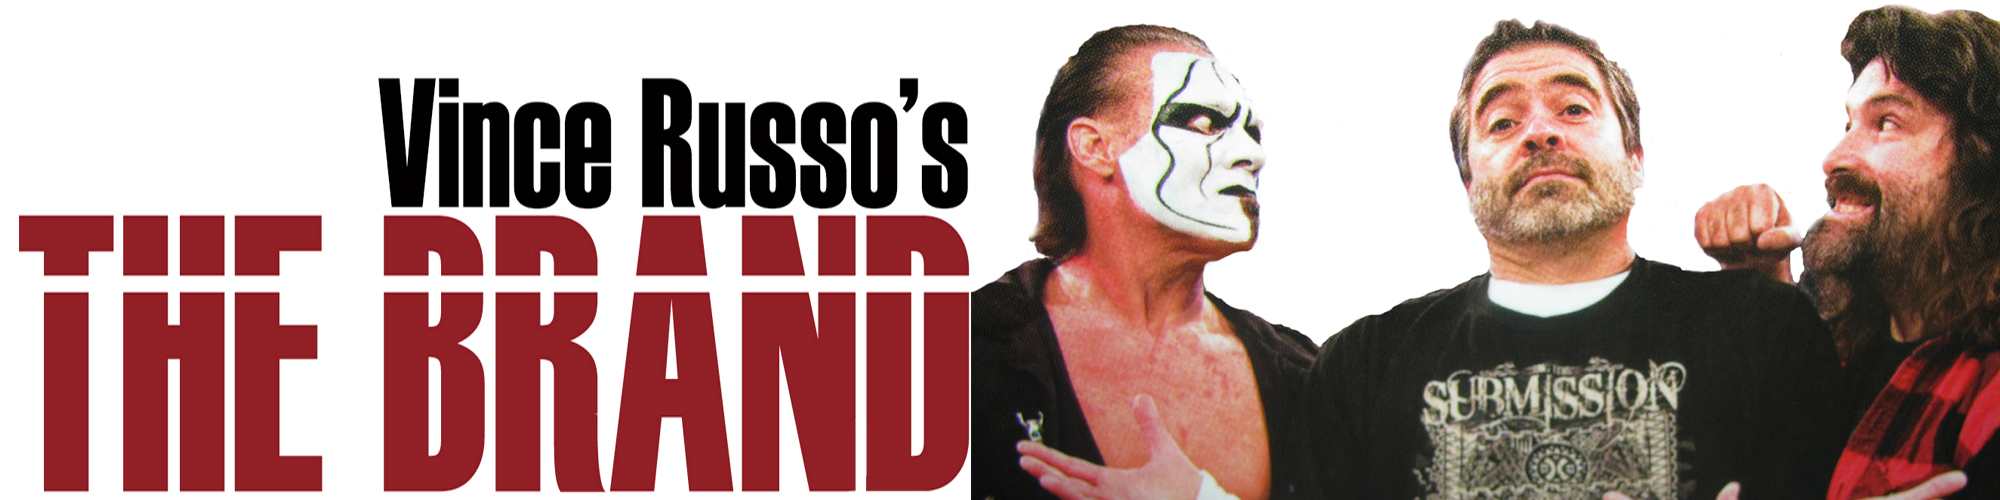 Vince Russo: The Brand